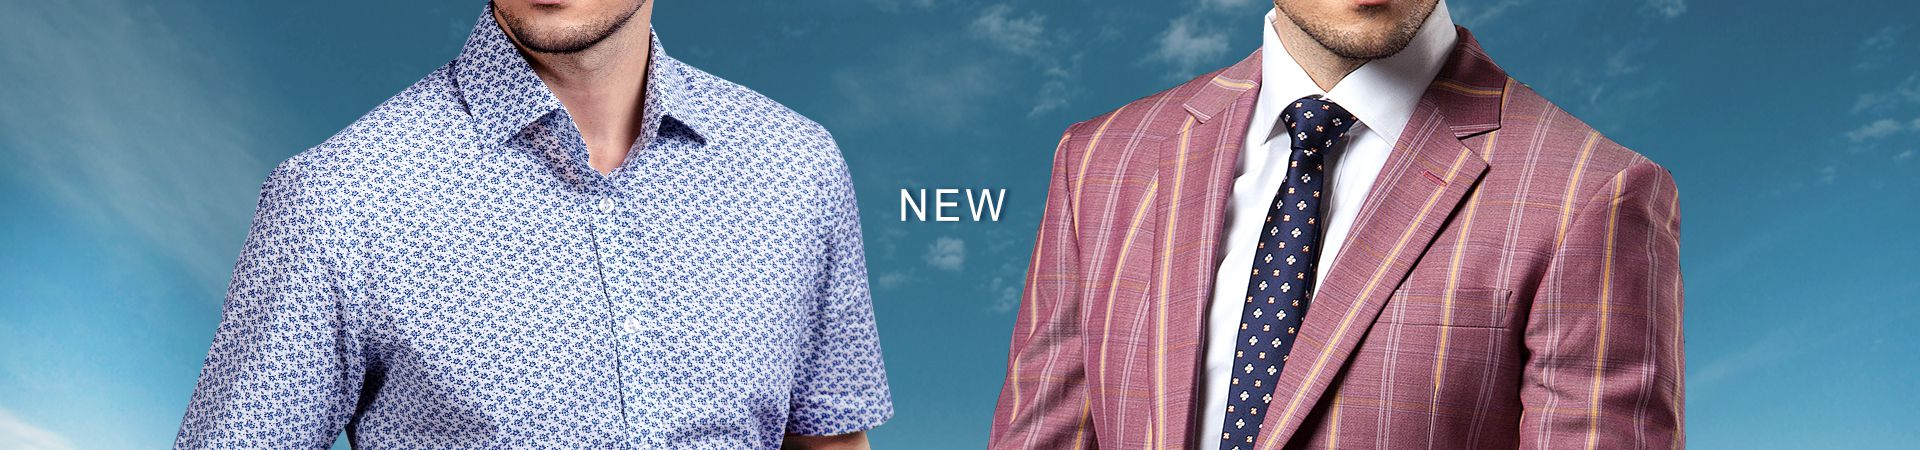 Custom Suits and Shirts - View our New Arrivals | Ultimatelapel